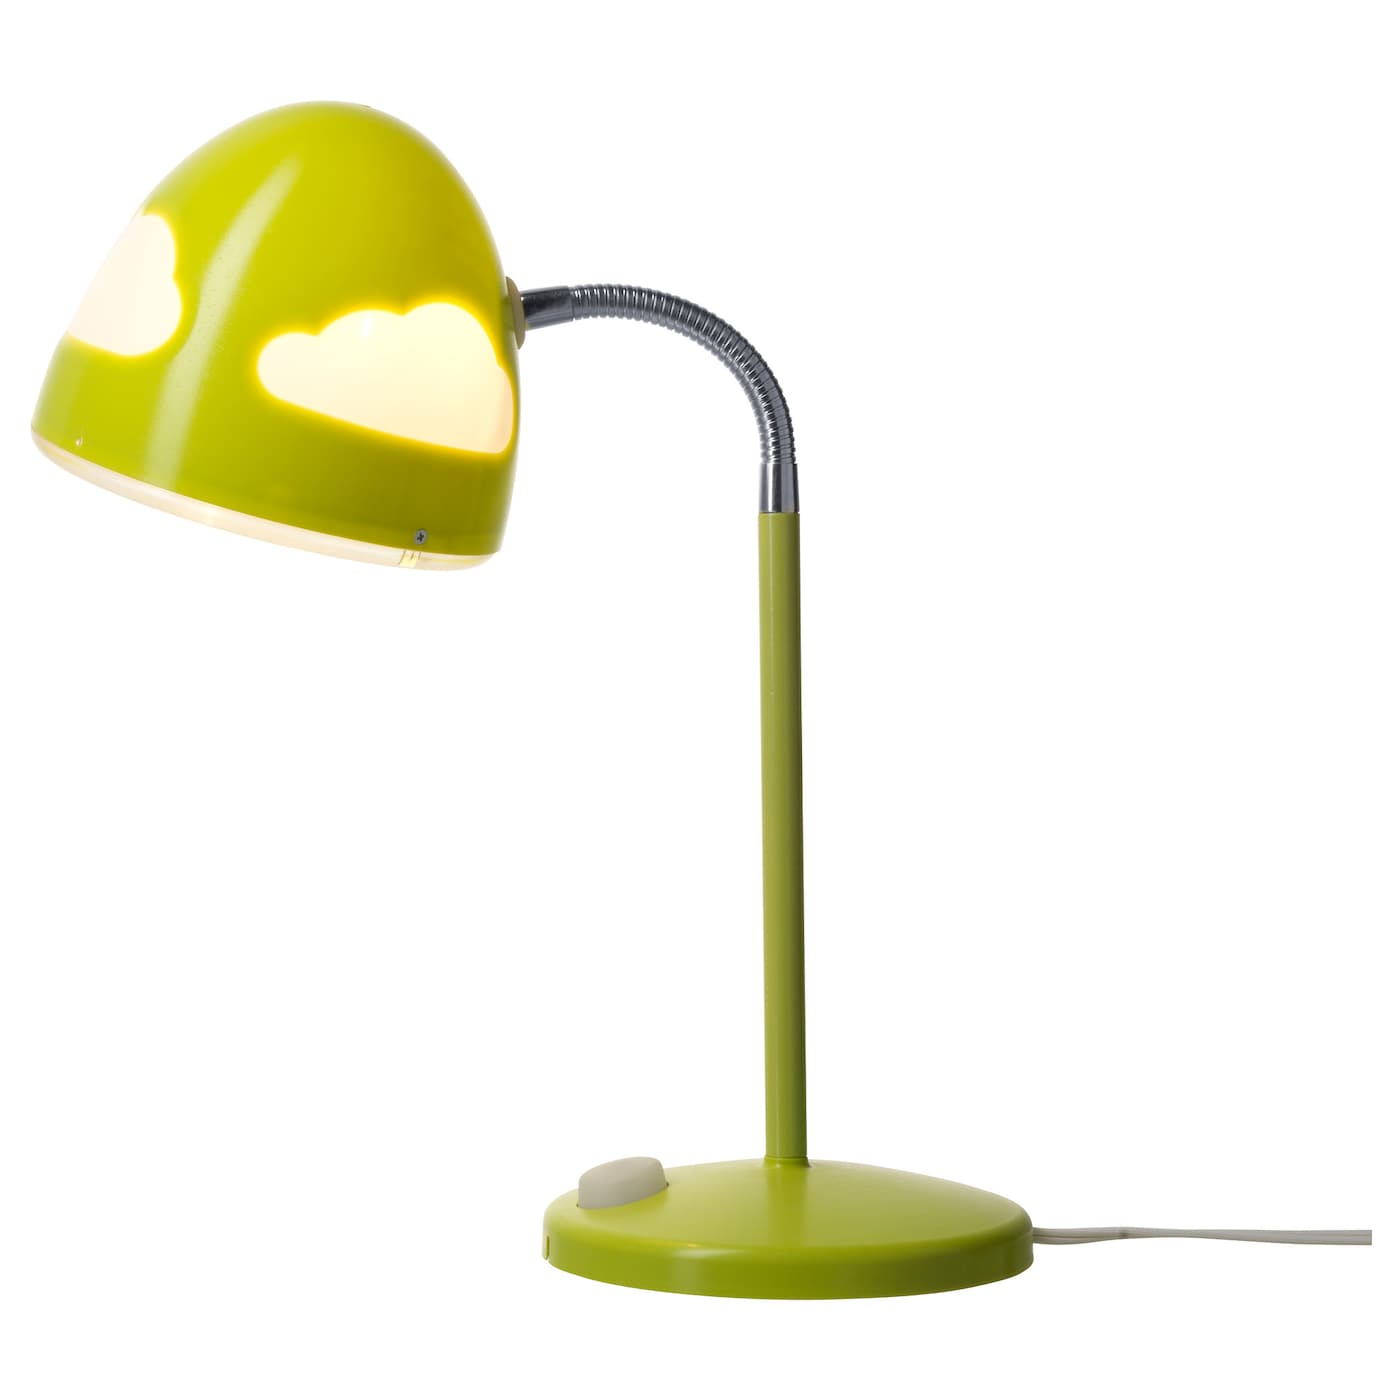 Nursery lighting night lights kids lamps ikea ikea skojig work lamp safety tested and tamper proof to protect little fingers geotapseo Images